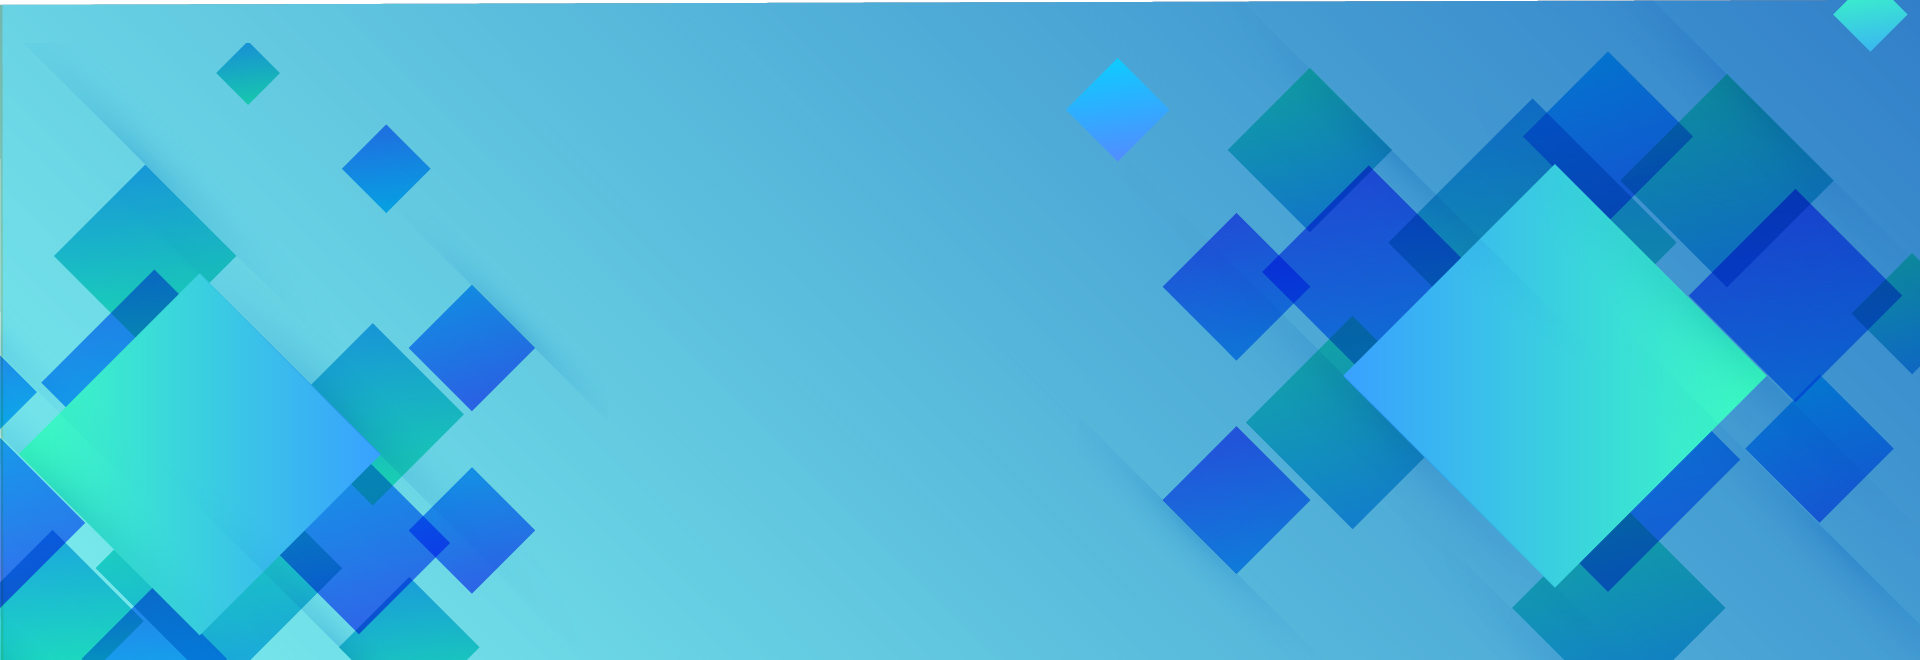 Blue blog banner with quadratic design